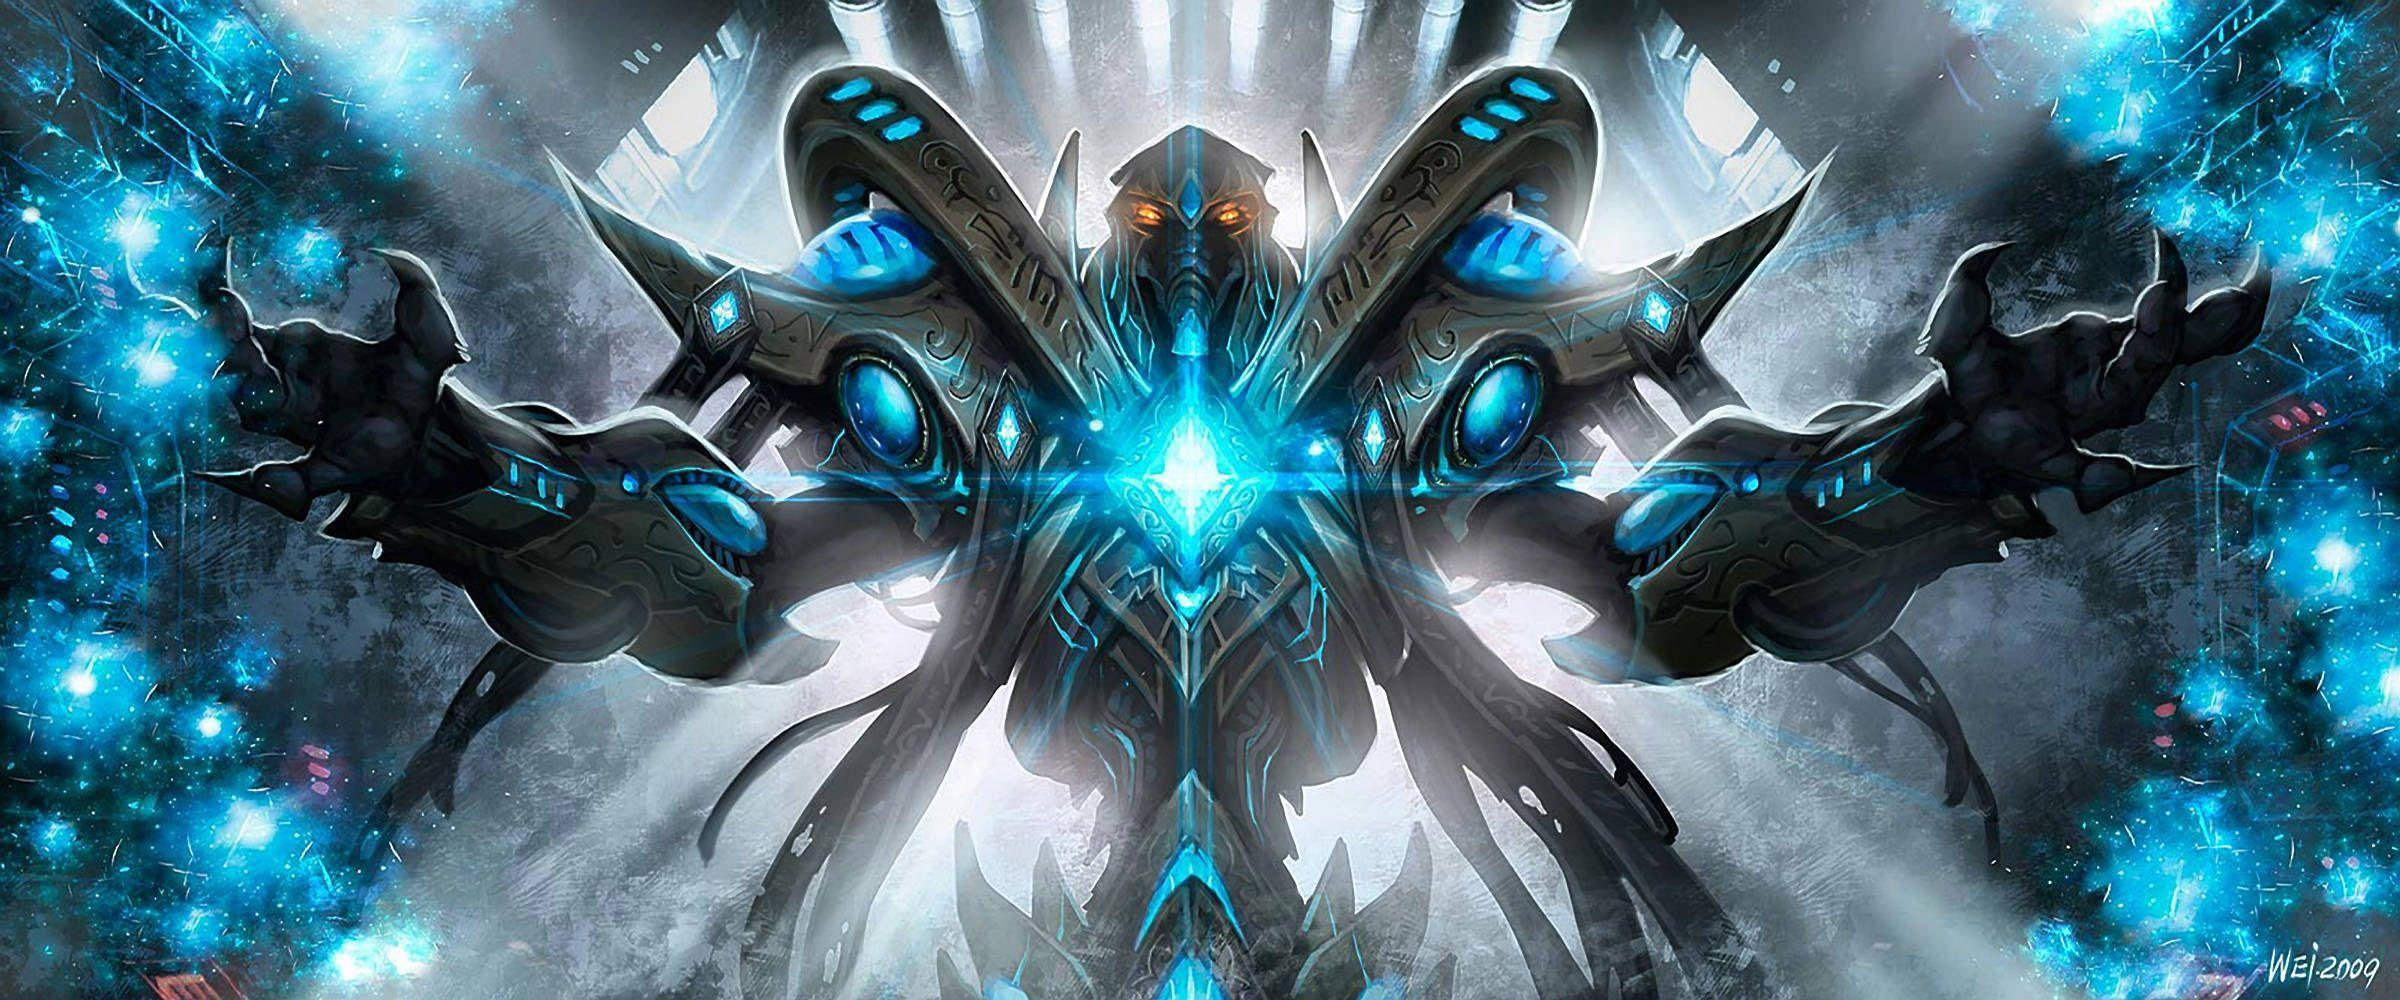 Starcraft Protoss 2400x1000 Wallpaper 803624